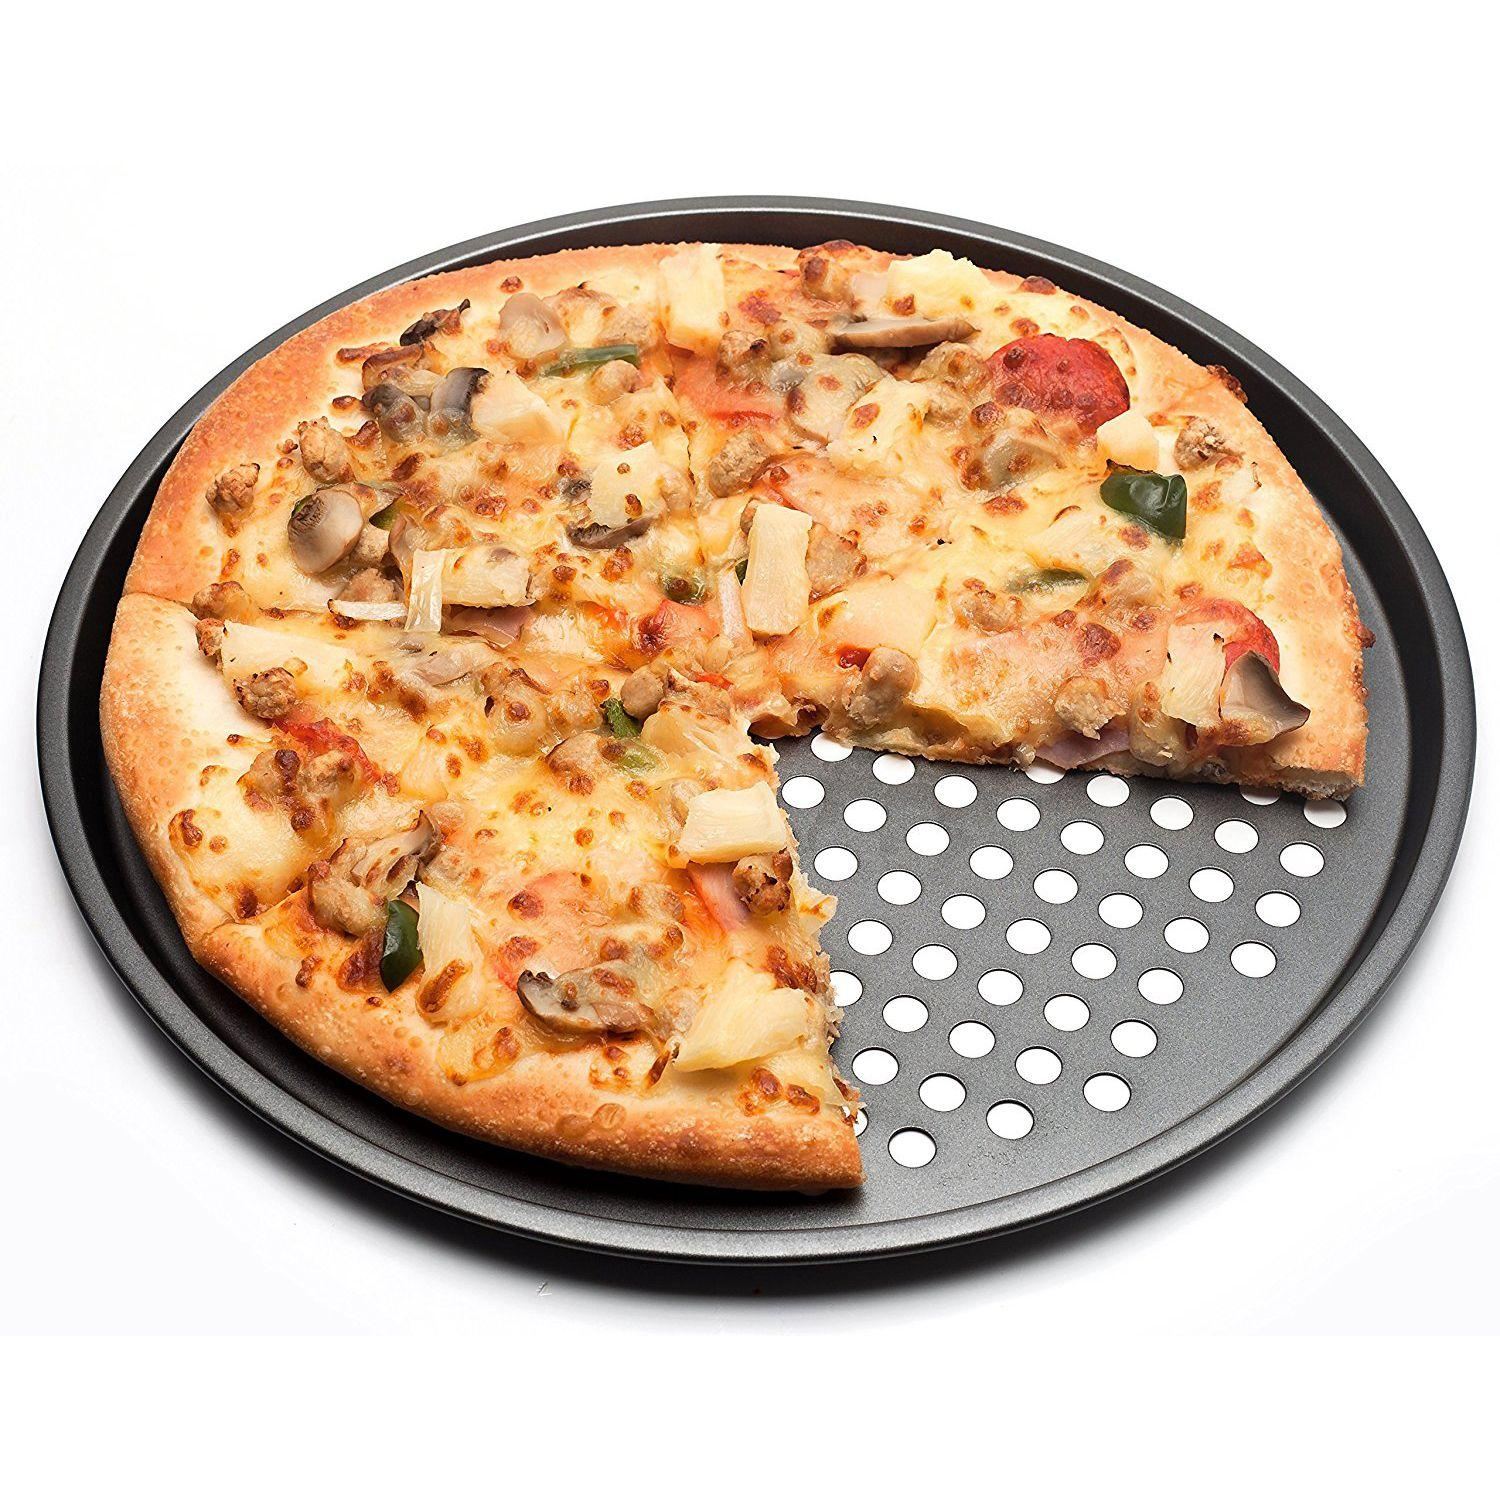 Cake tools Carbon Steel Nonstick Pizza Baking Pan Tray 26cm 28cm 32cm Pizza-Plate Dishes Holder Bakeware Home Kitchen Accessories